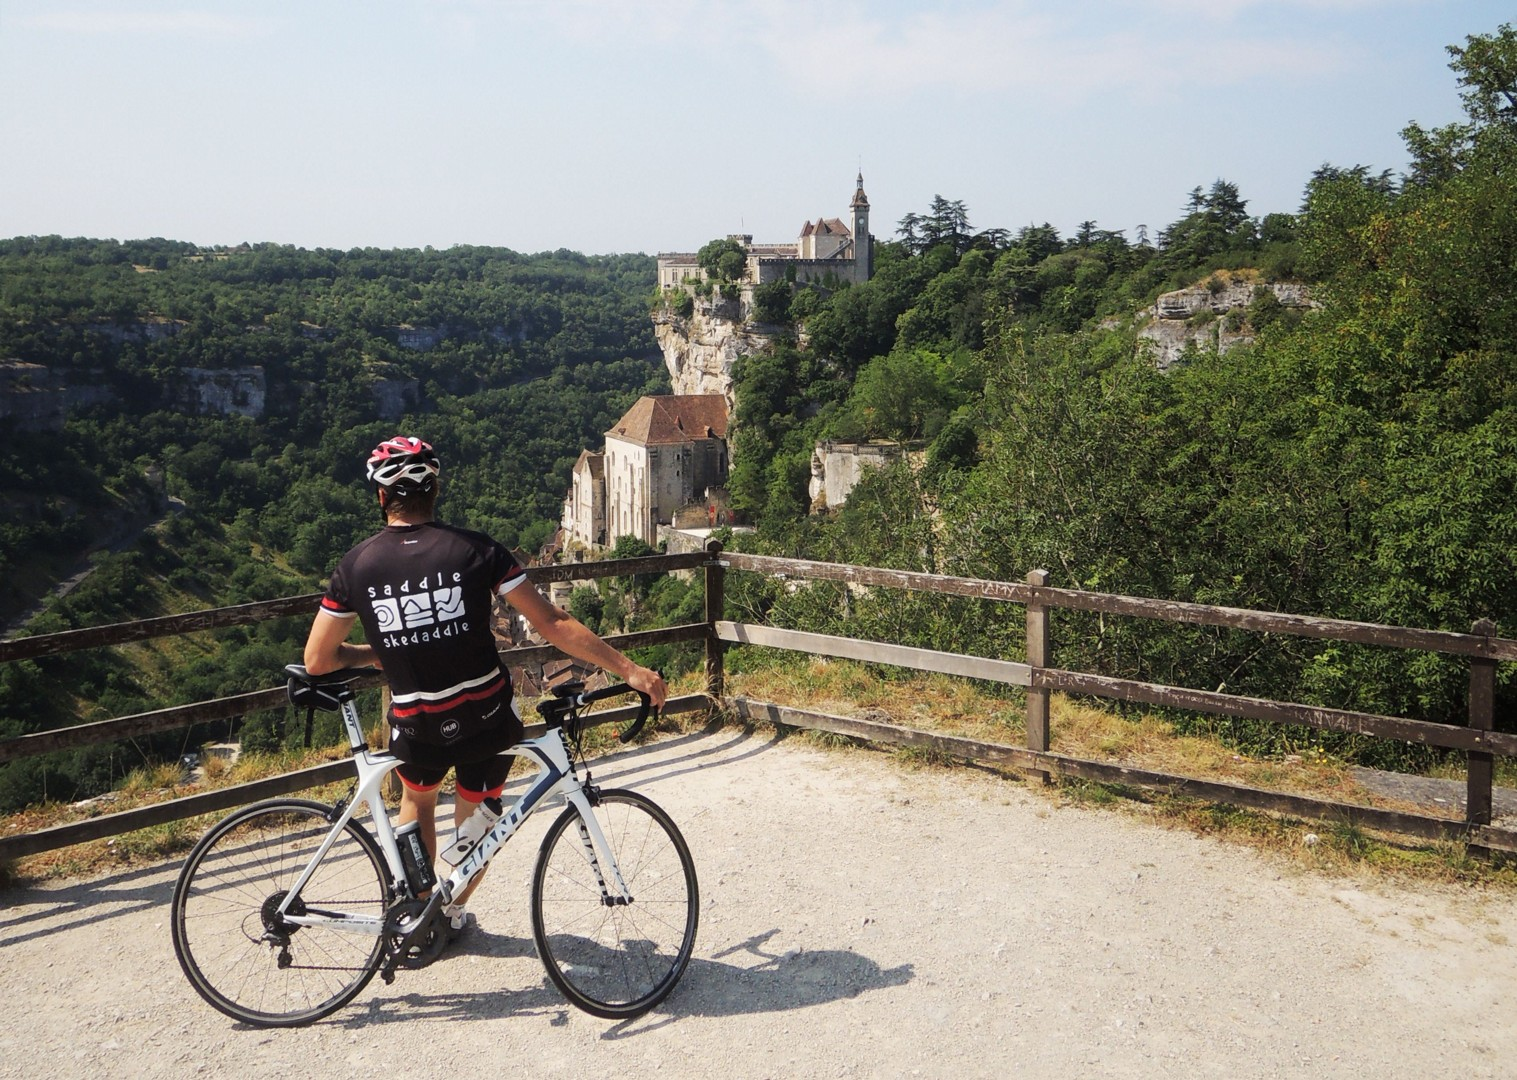 road-cycling-holiday-france.jpg - France - St Malo to Nice Classic (15 days) - Guided Road Cycling Holiday - Road Cycling